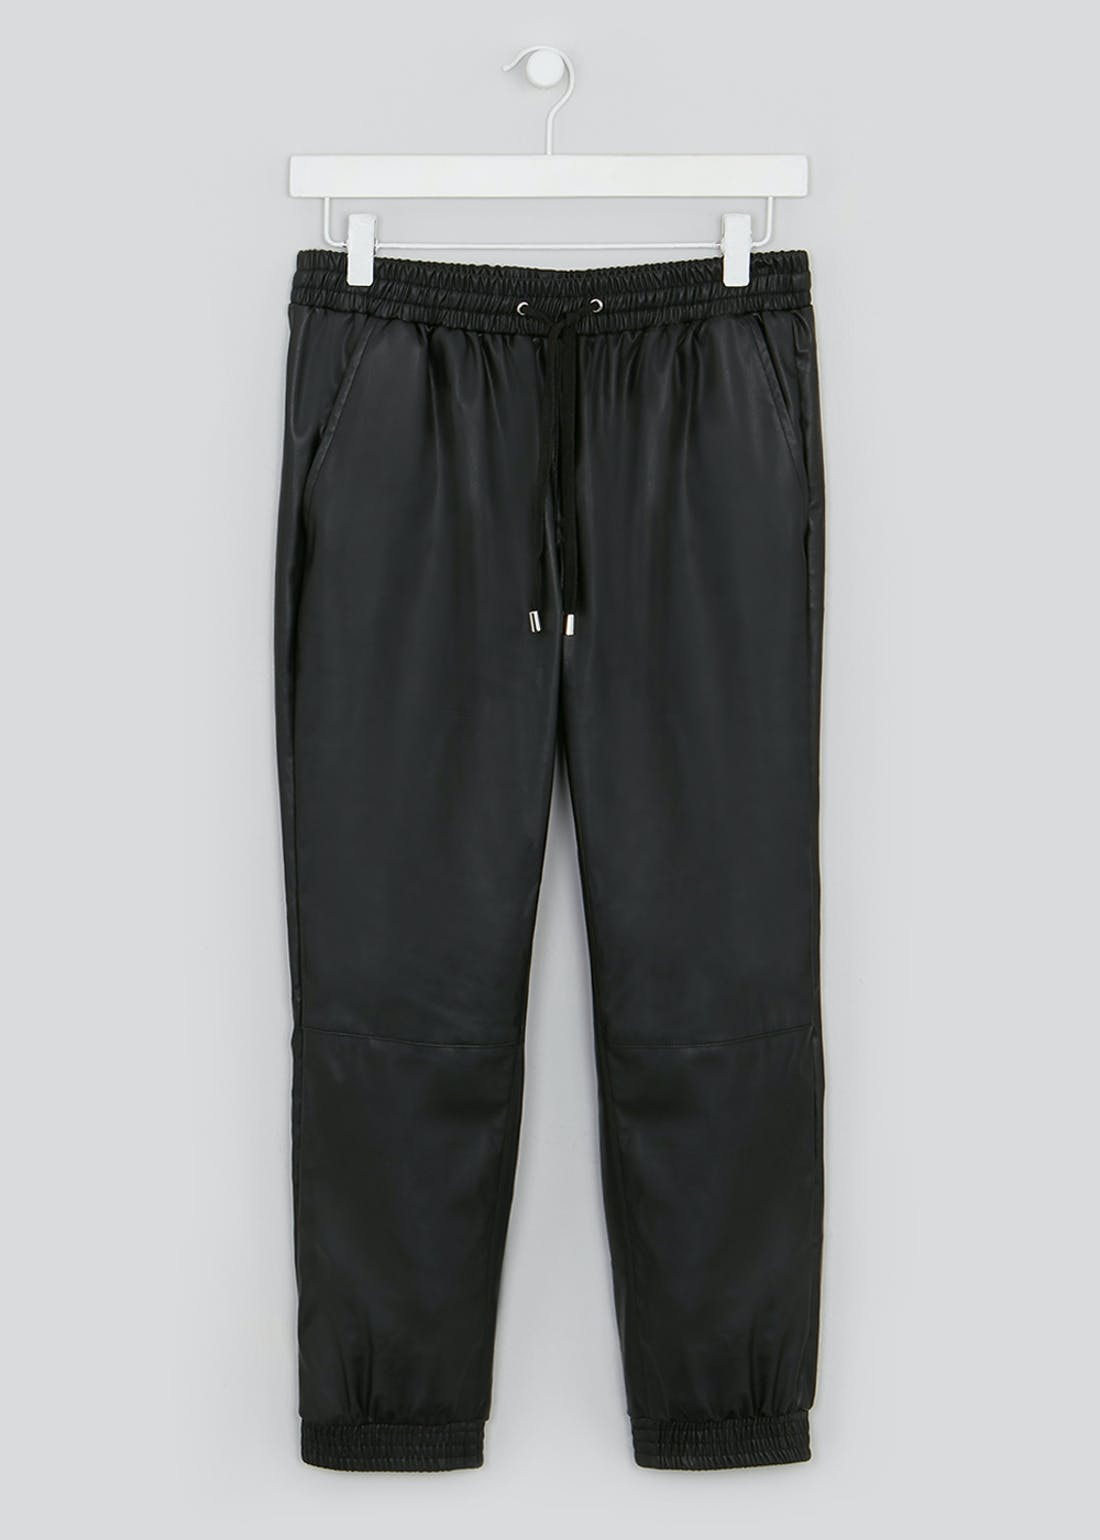 Papaya Petite Leather Look Joggers